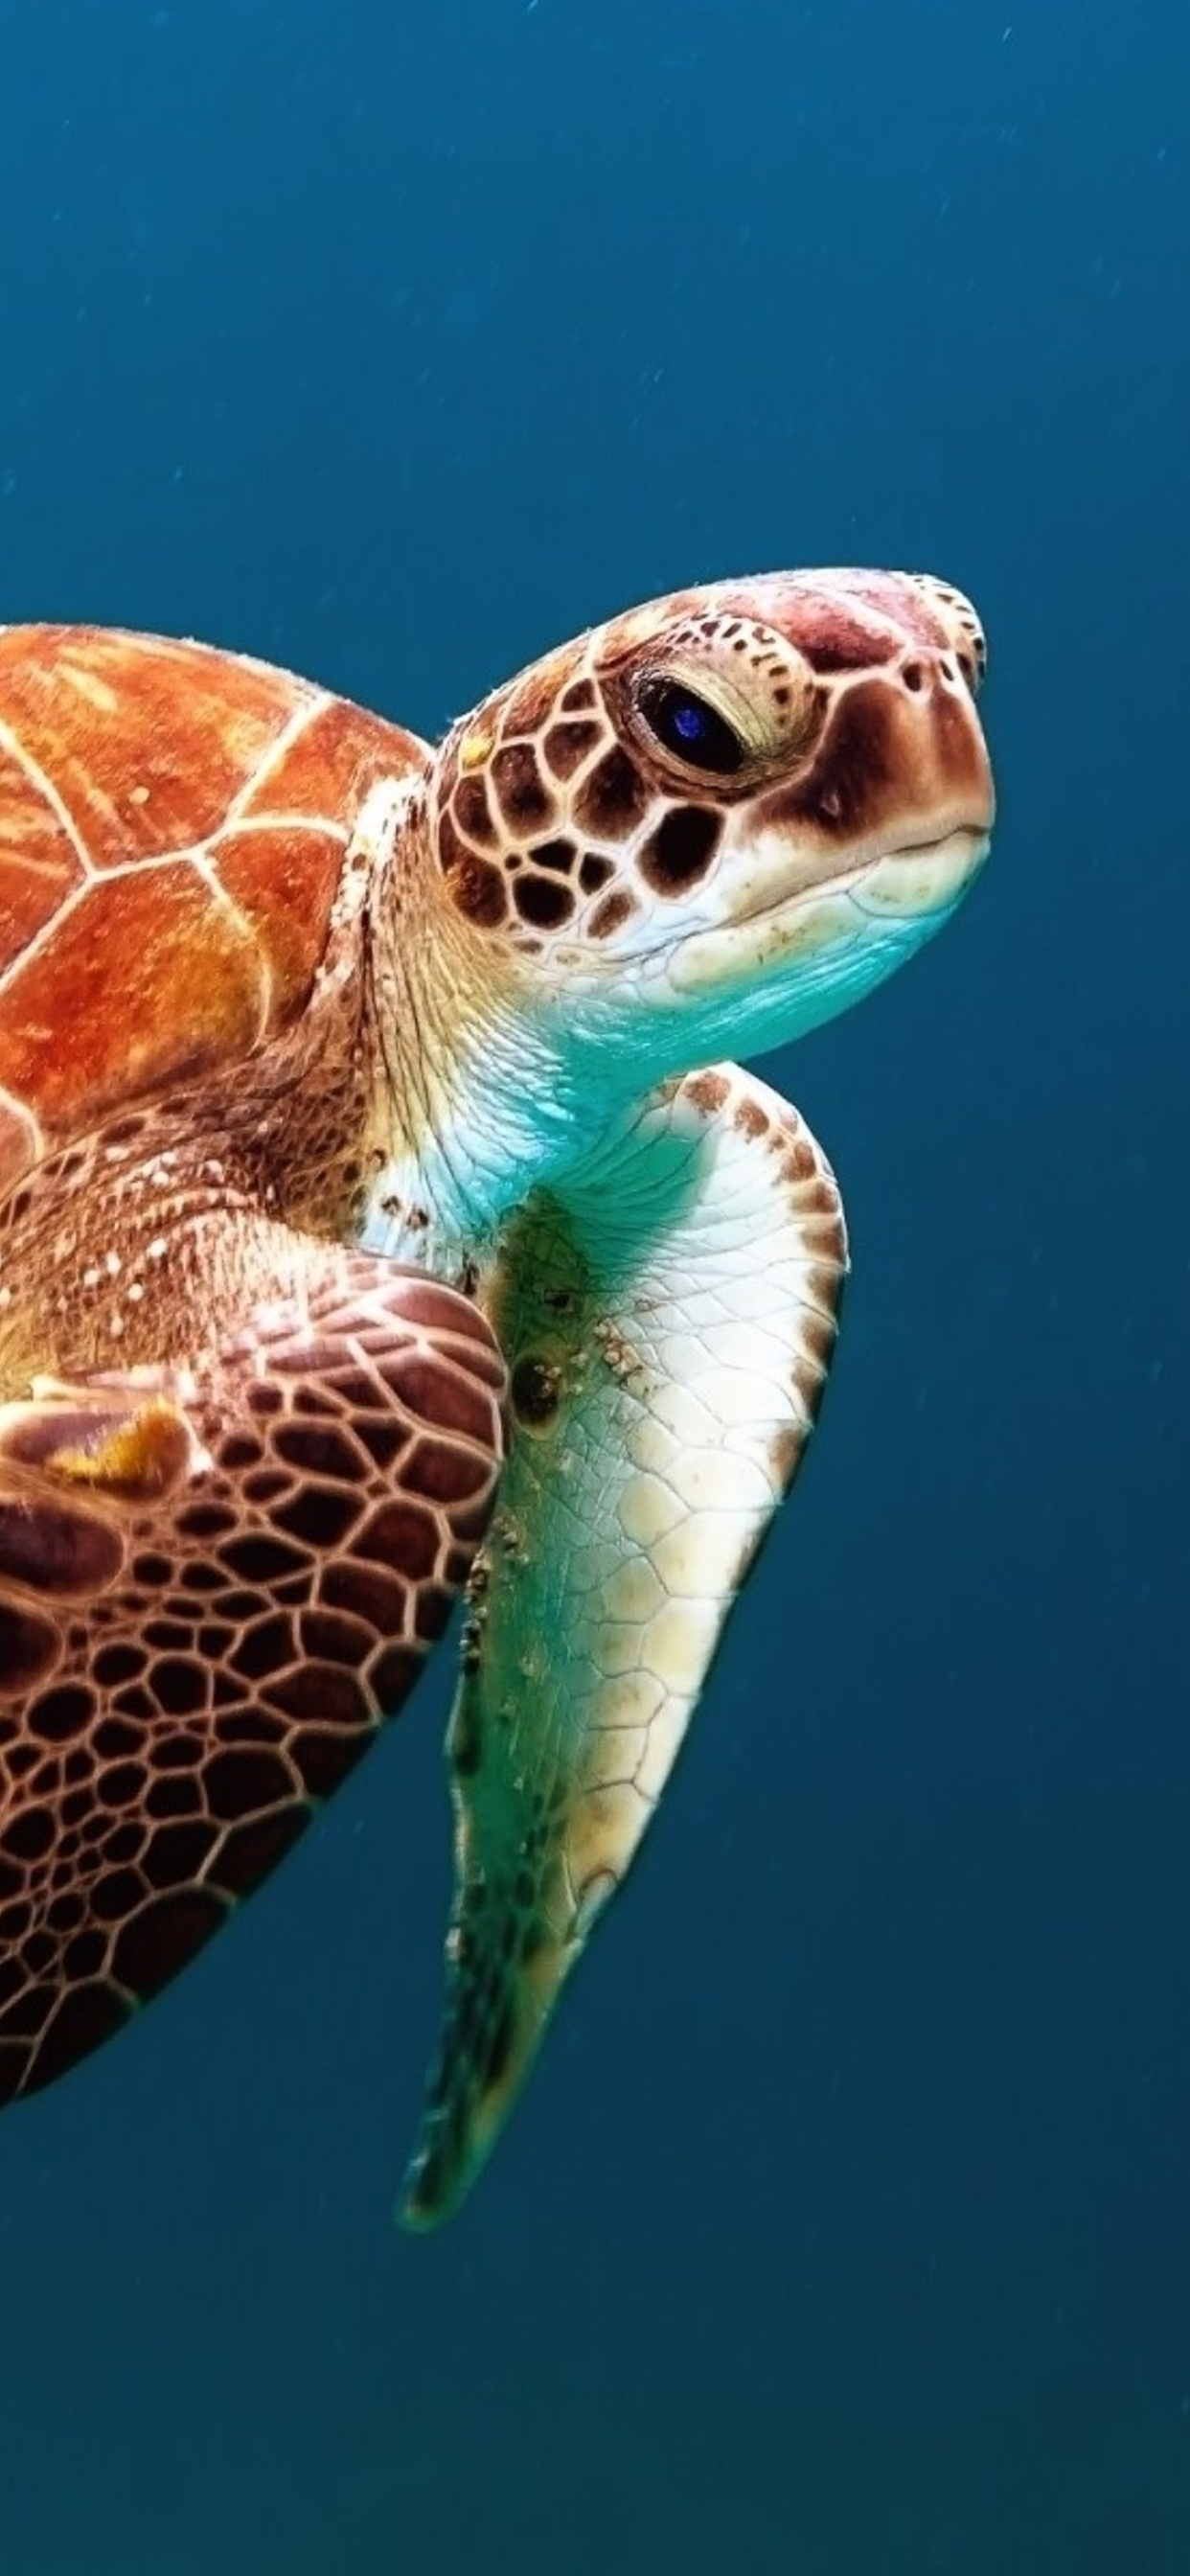 1242x2688 Turtle Reptile Underwater Iphone Xs Max Hd 4k Wallpapers